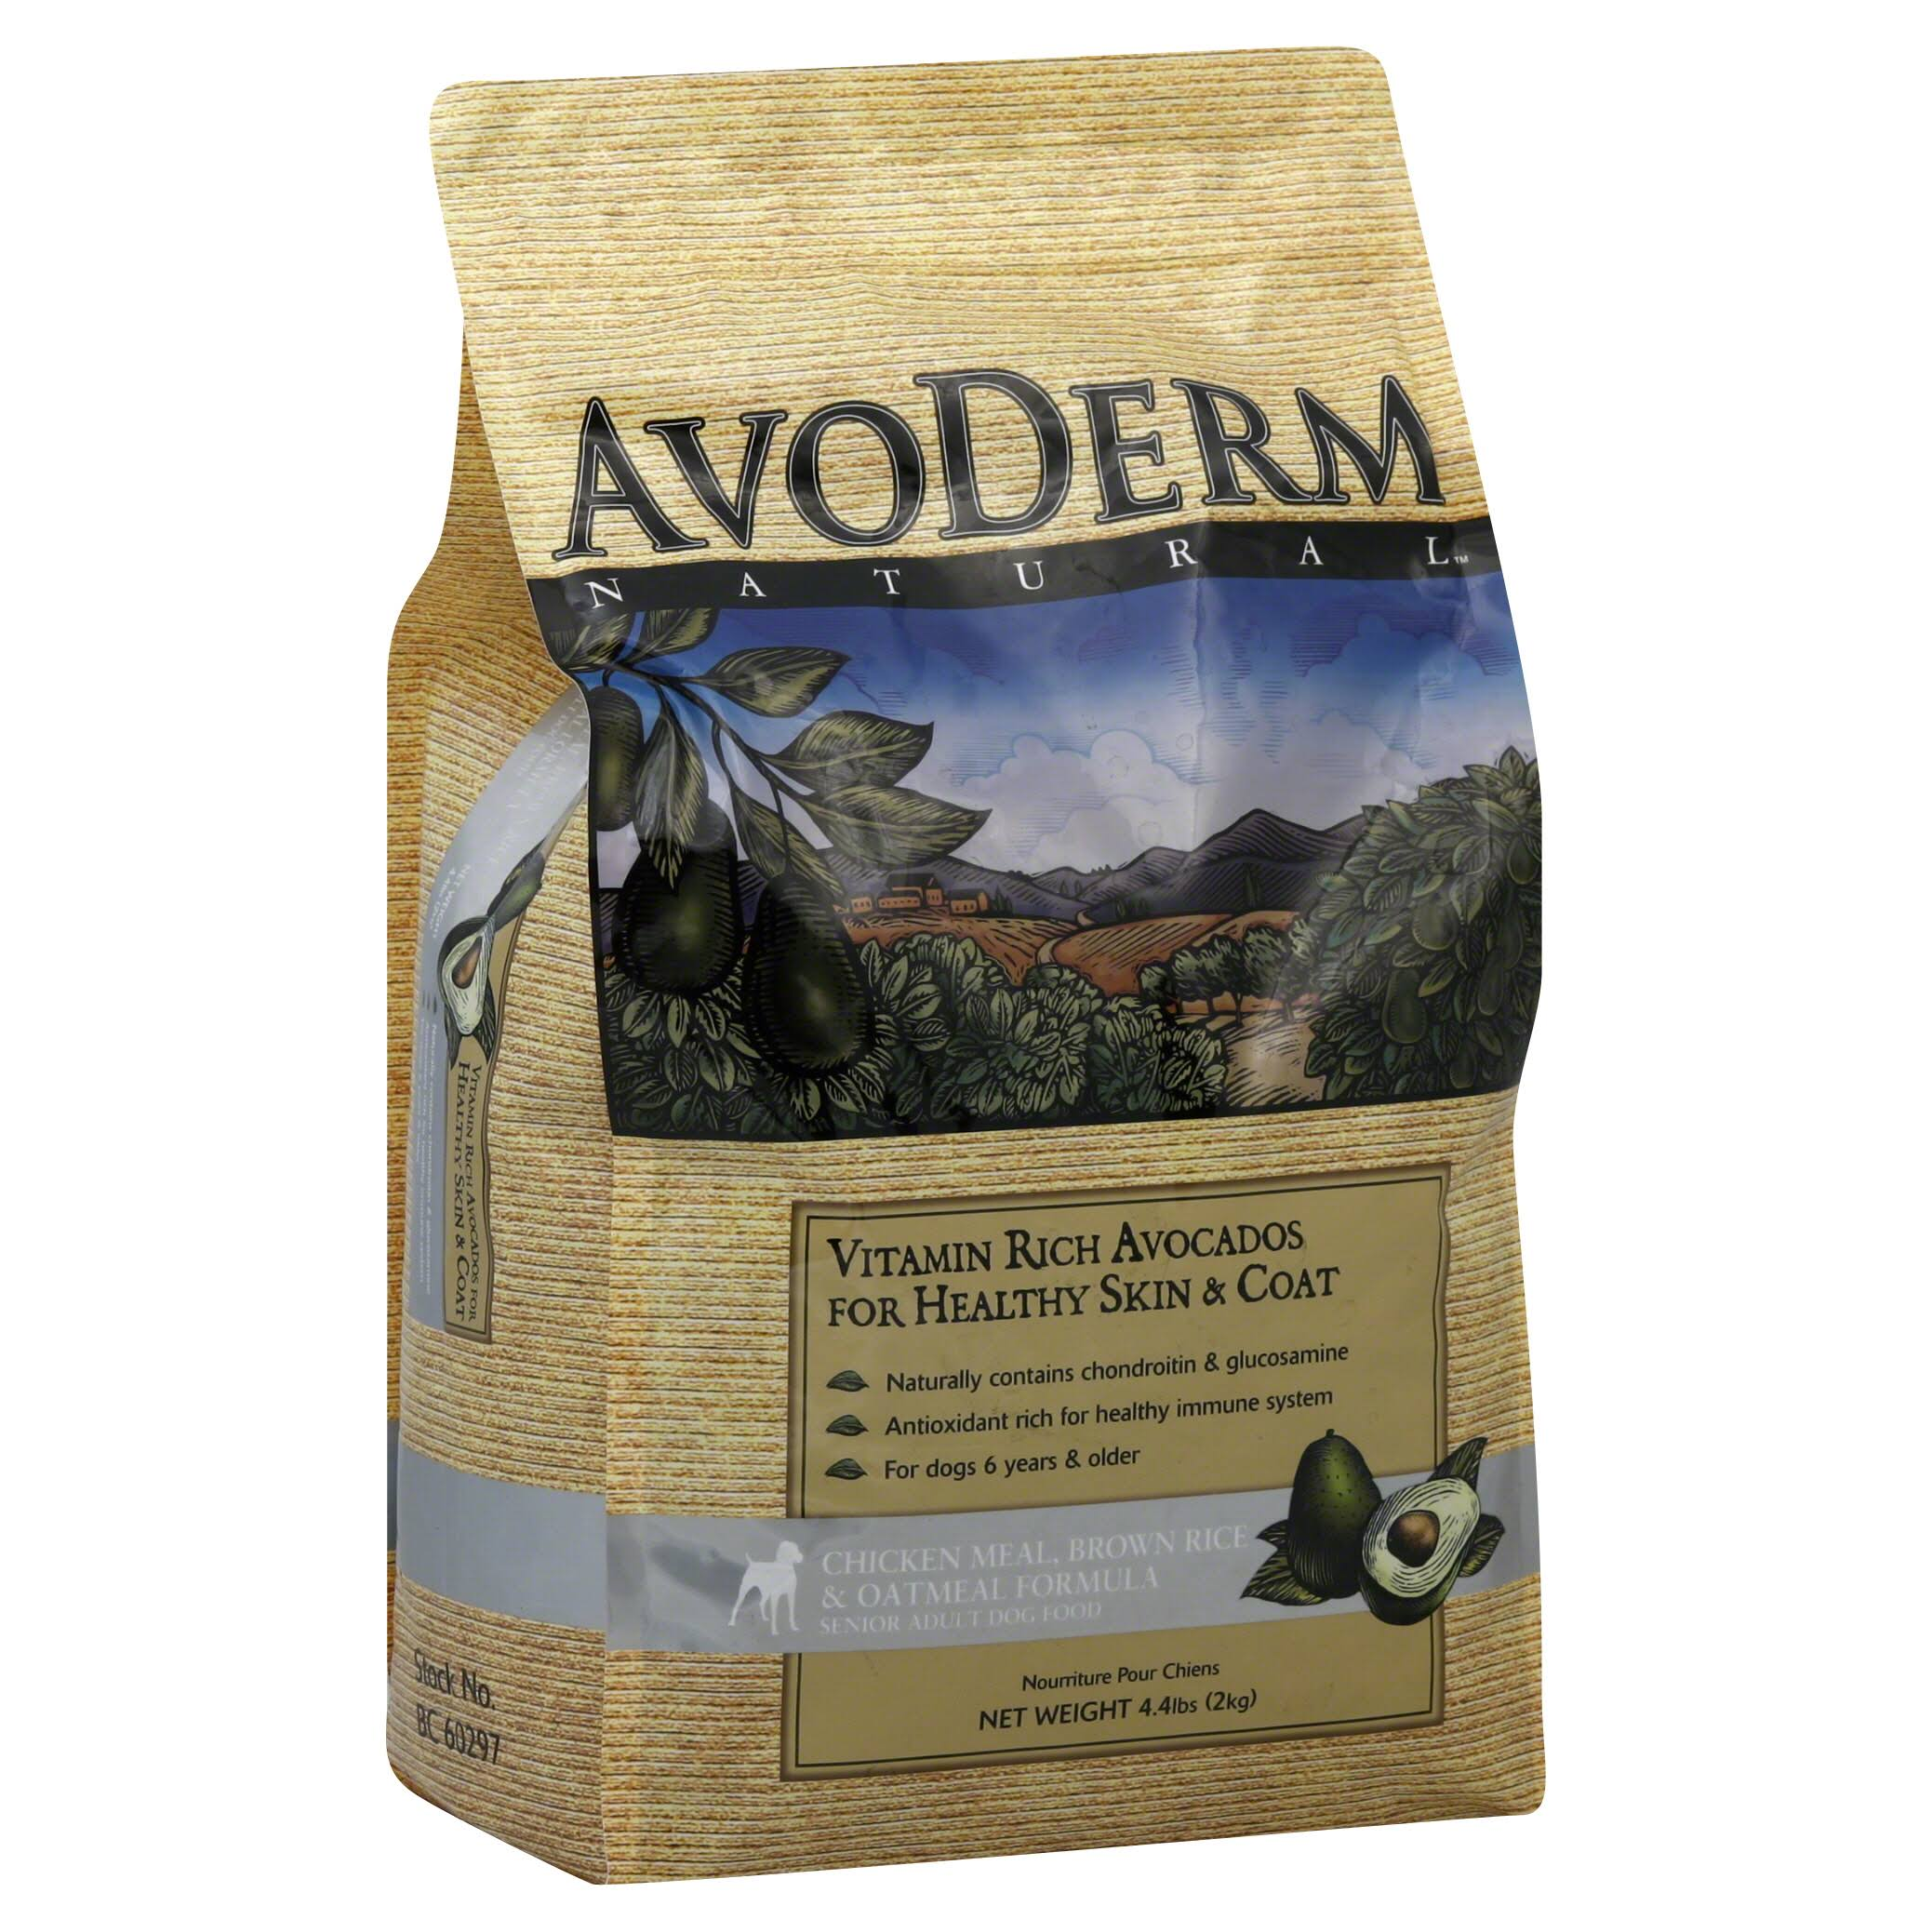 AvoDerm Natural Chicken Meal and Brown Rice Formula Senior Dog Food - 4.4lb